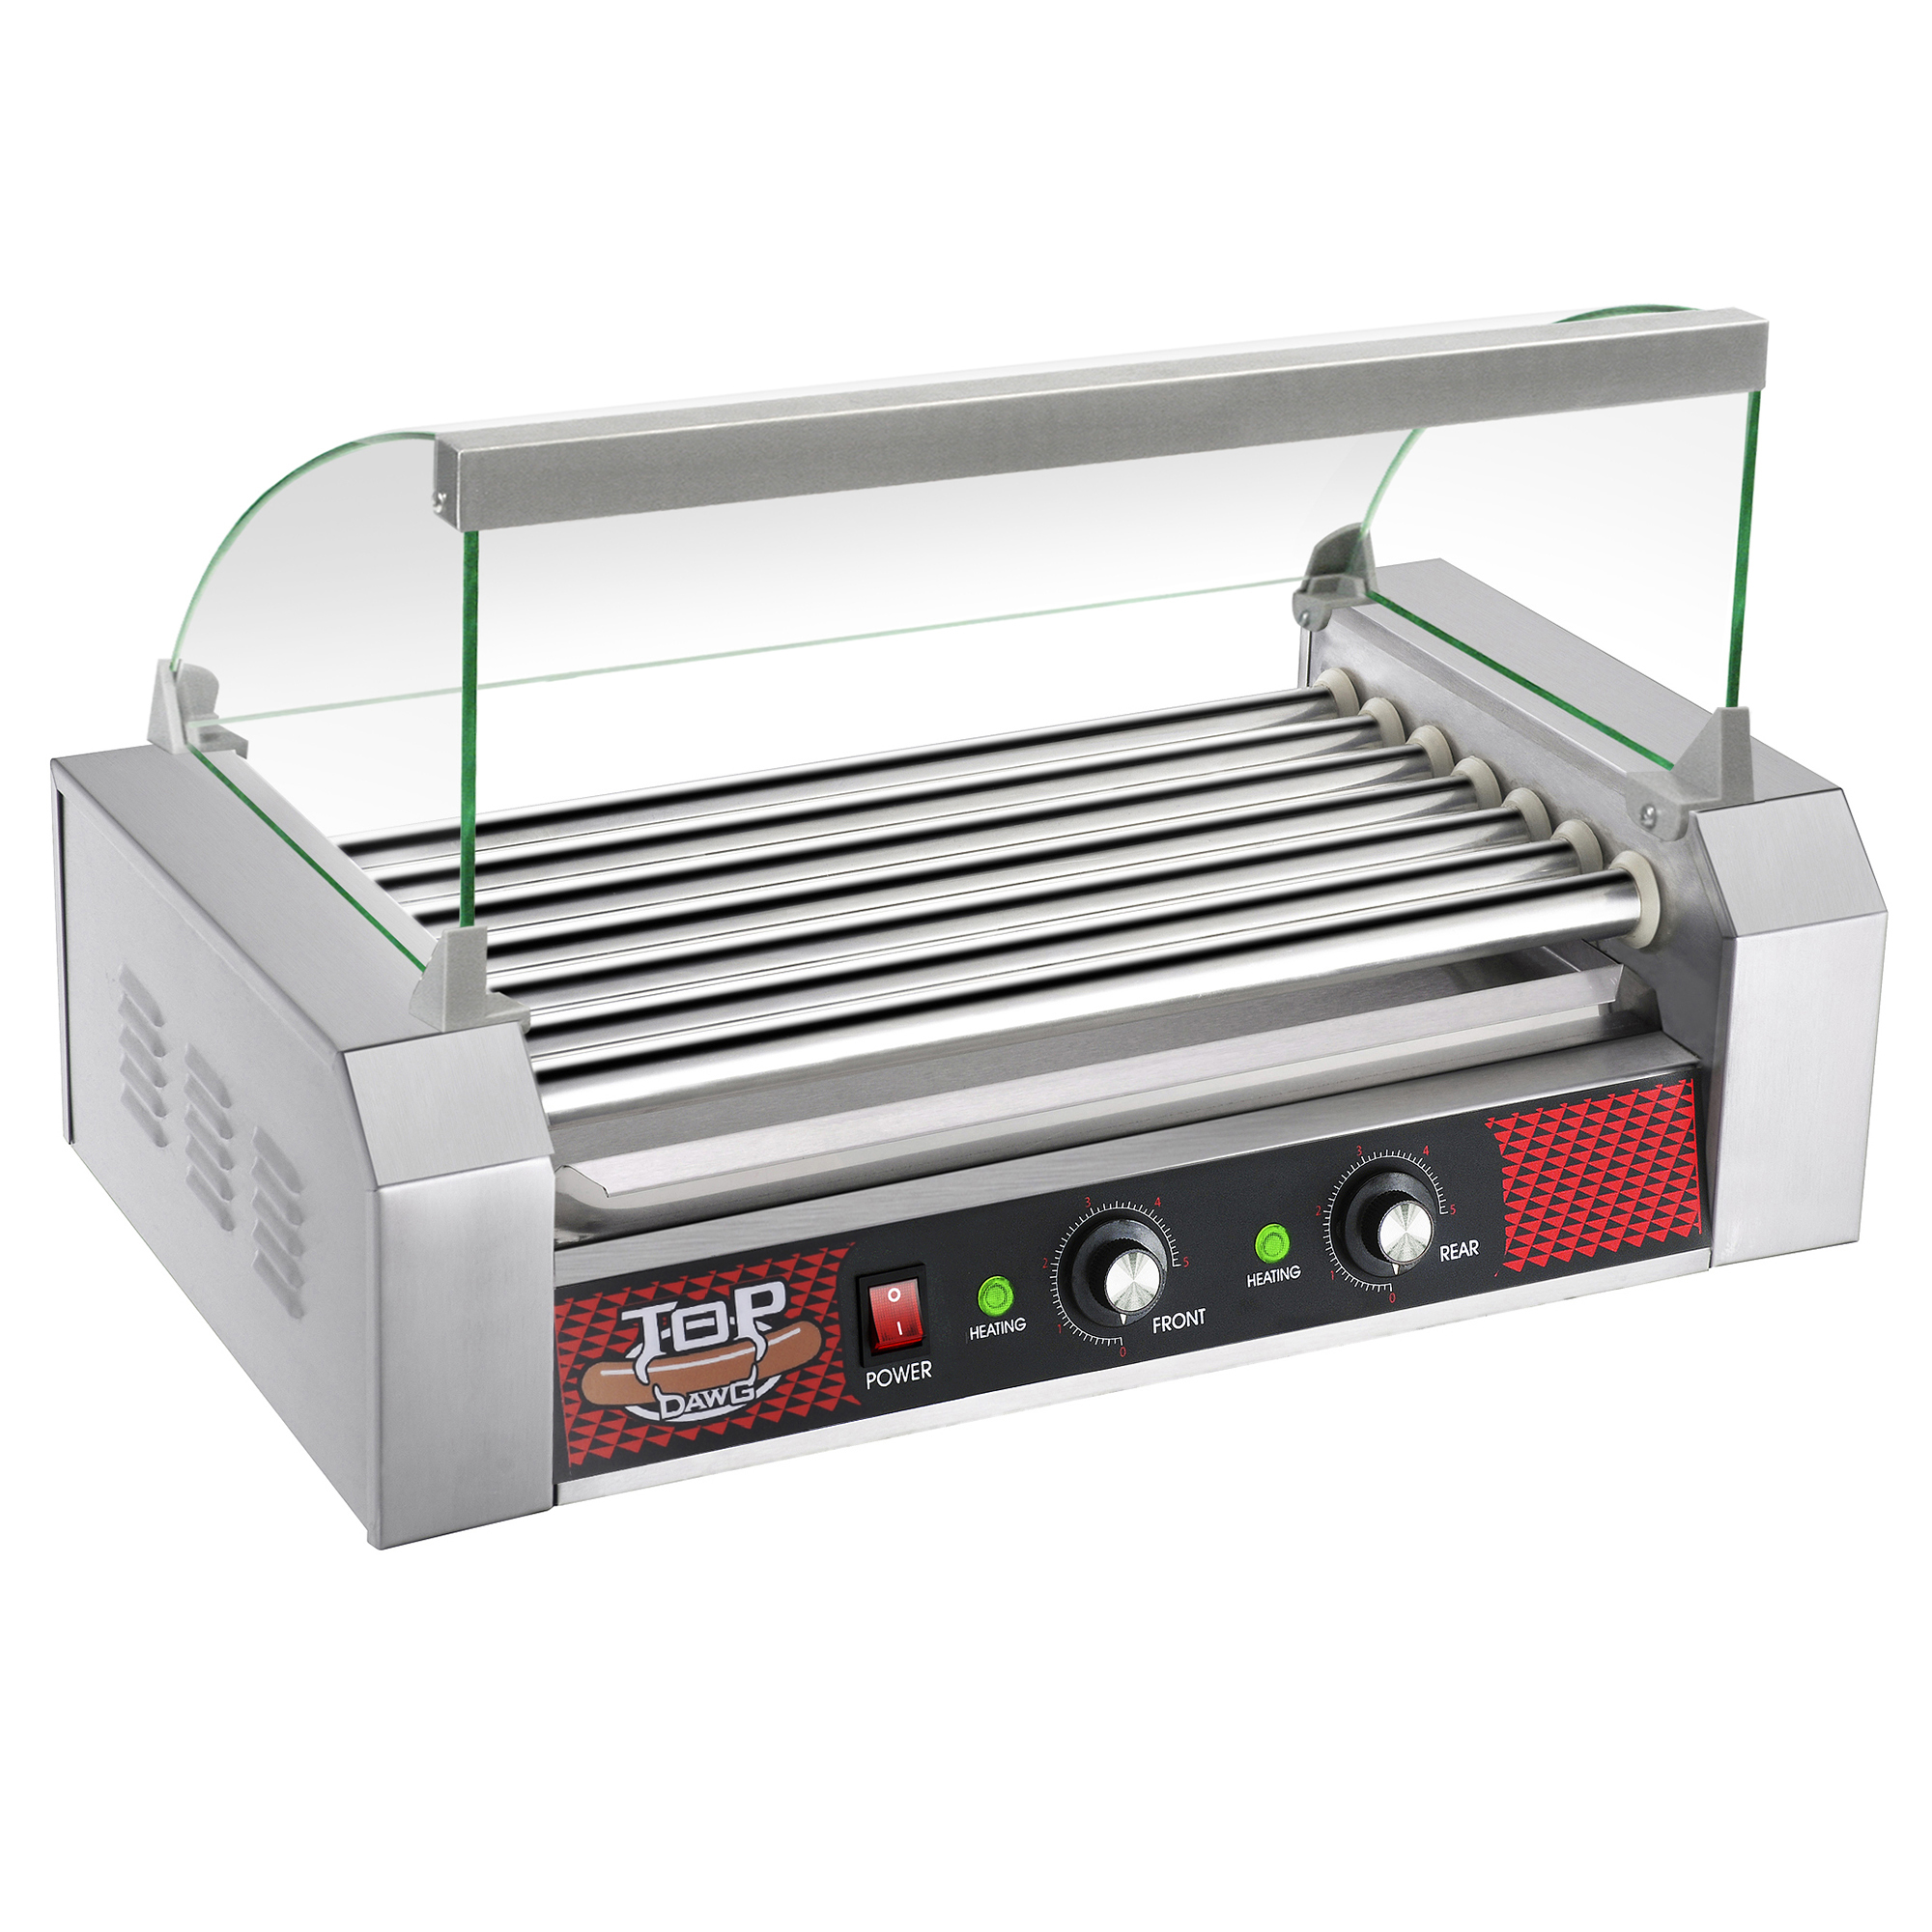 Great Northern Commercial Quality 18 Hot Dog 7 Roller Grilling Machine W/ Cover 1400Watts